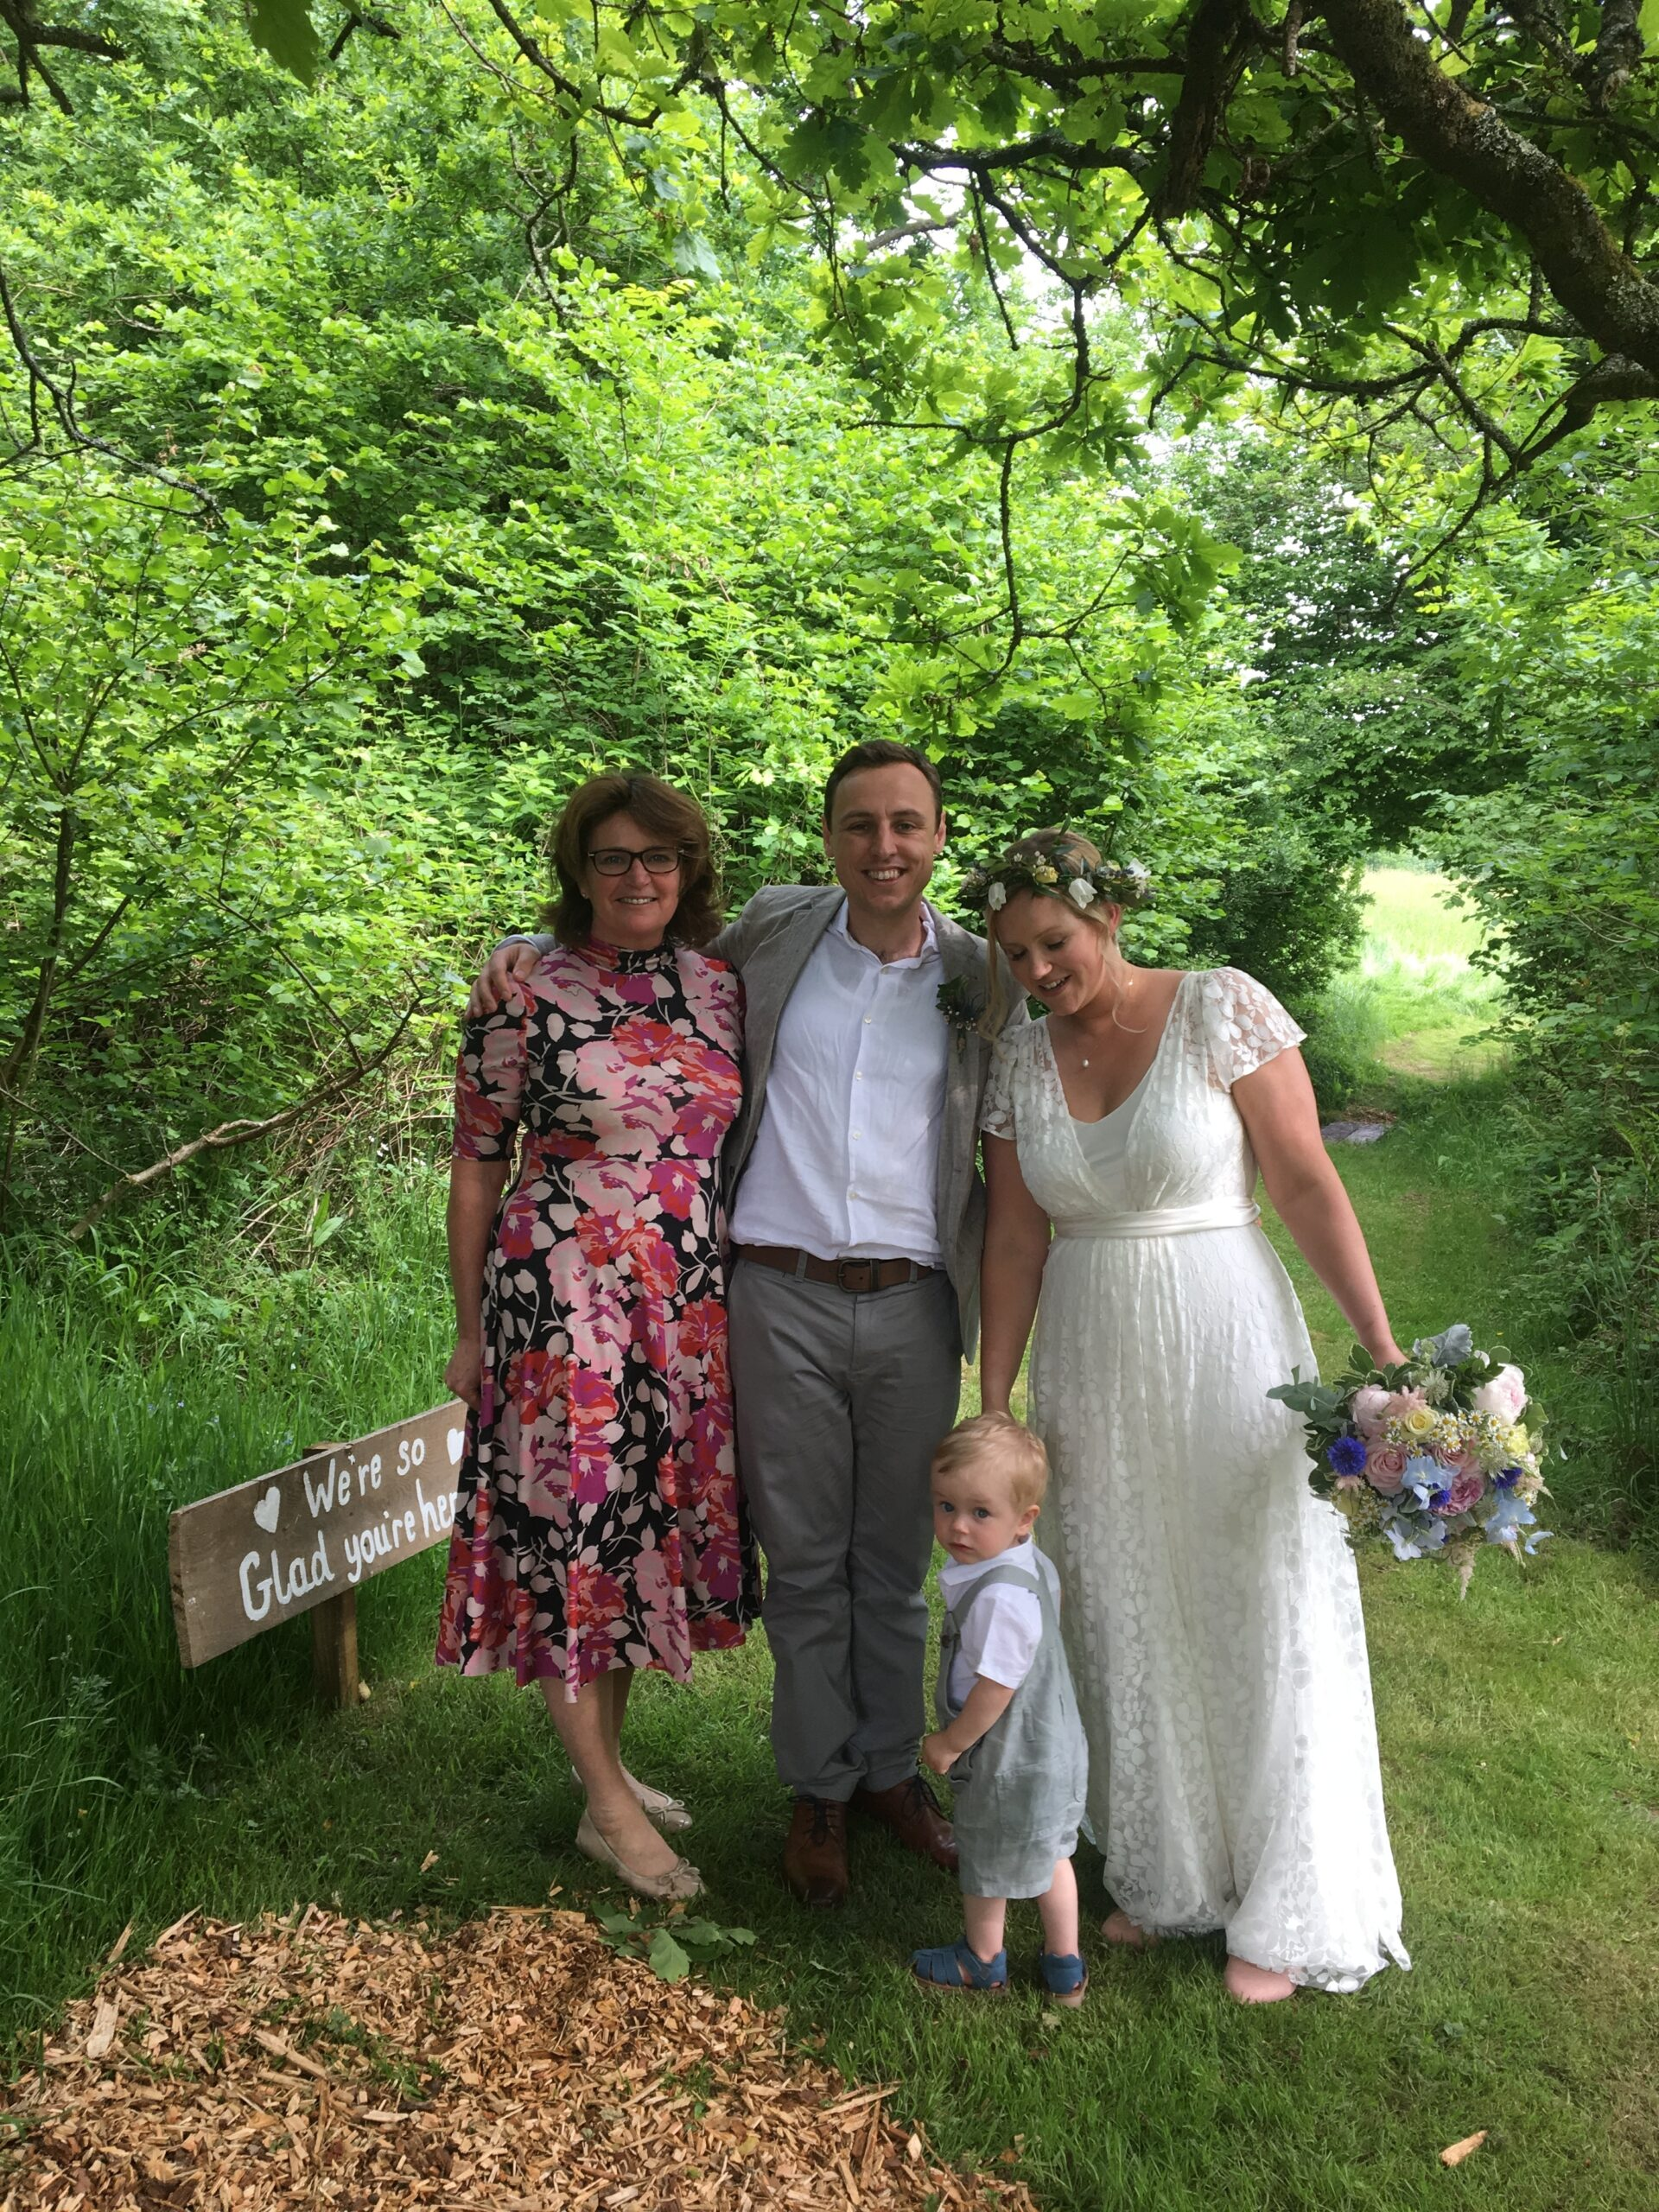 4 reasons not to use a wedding celebrant